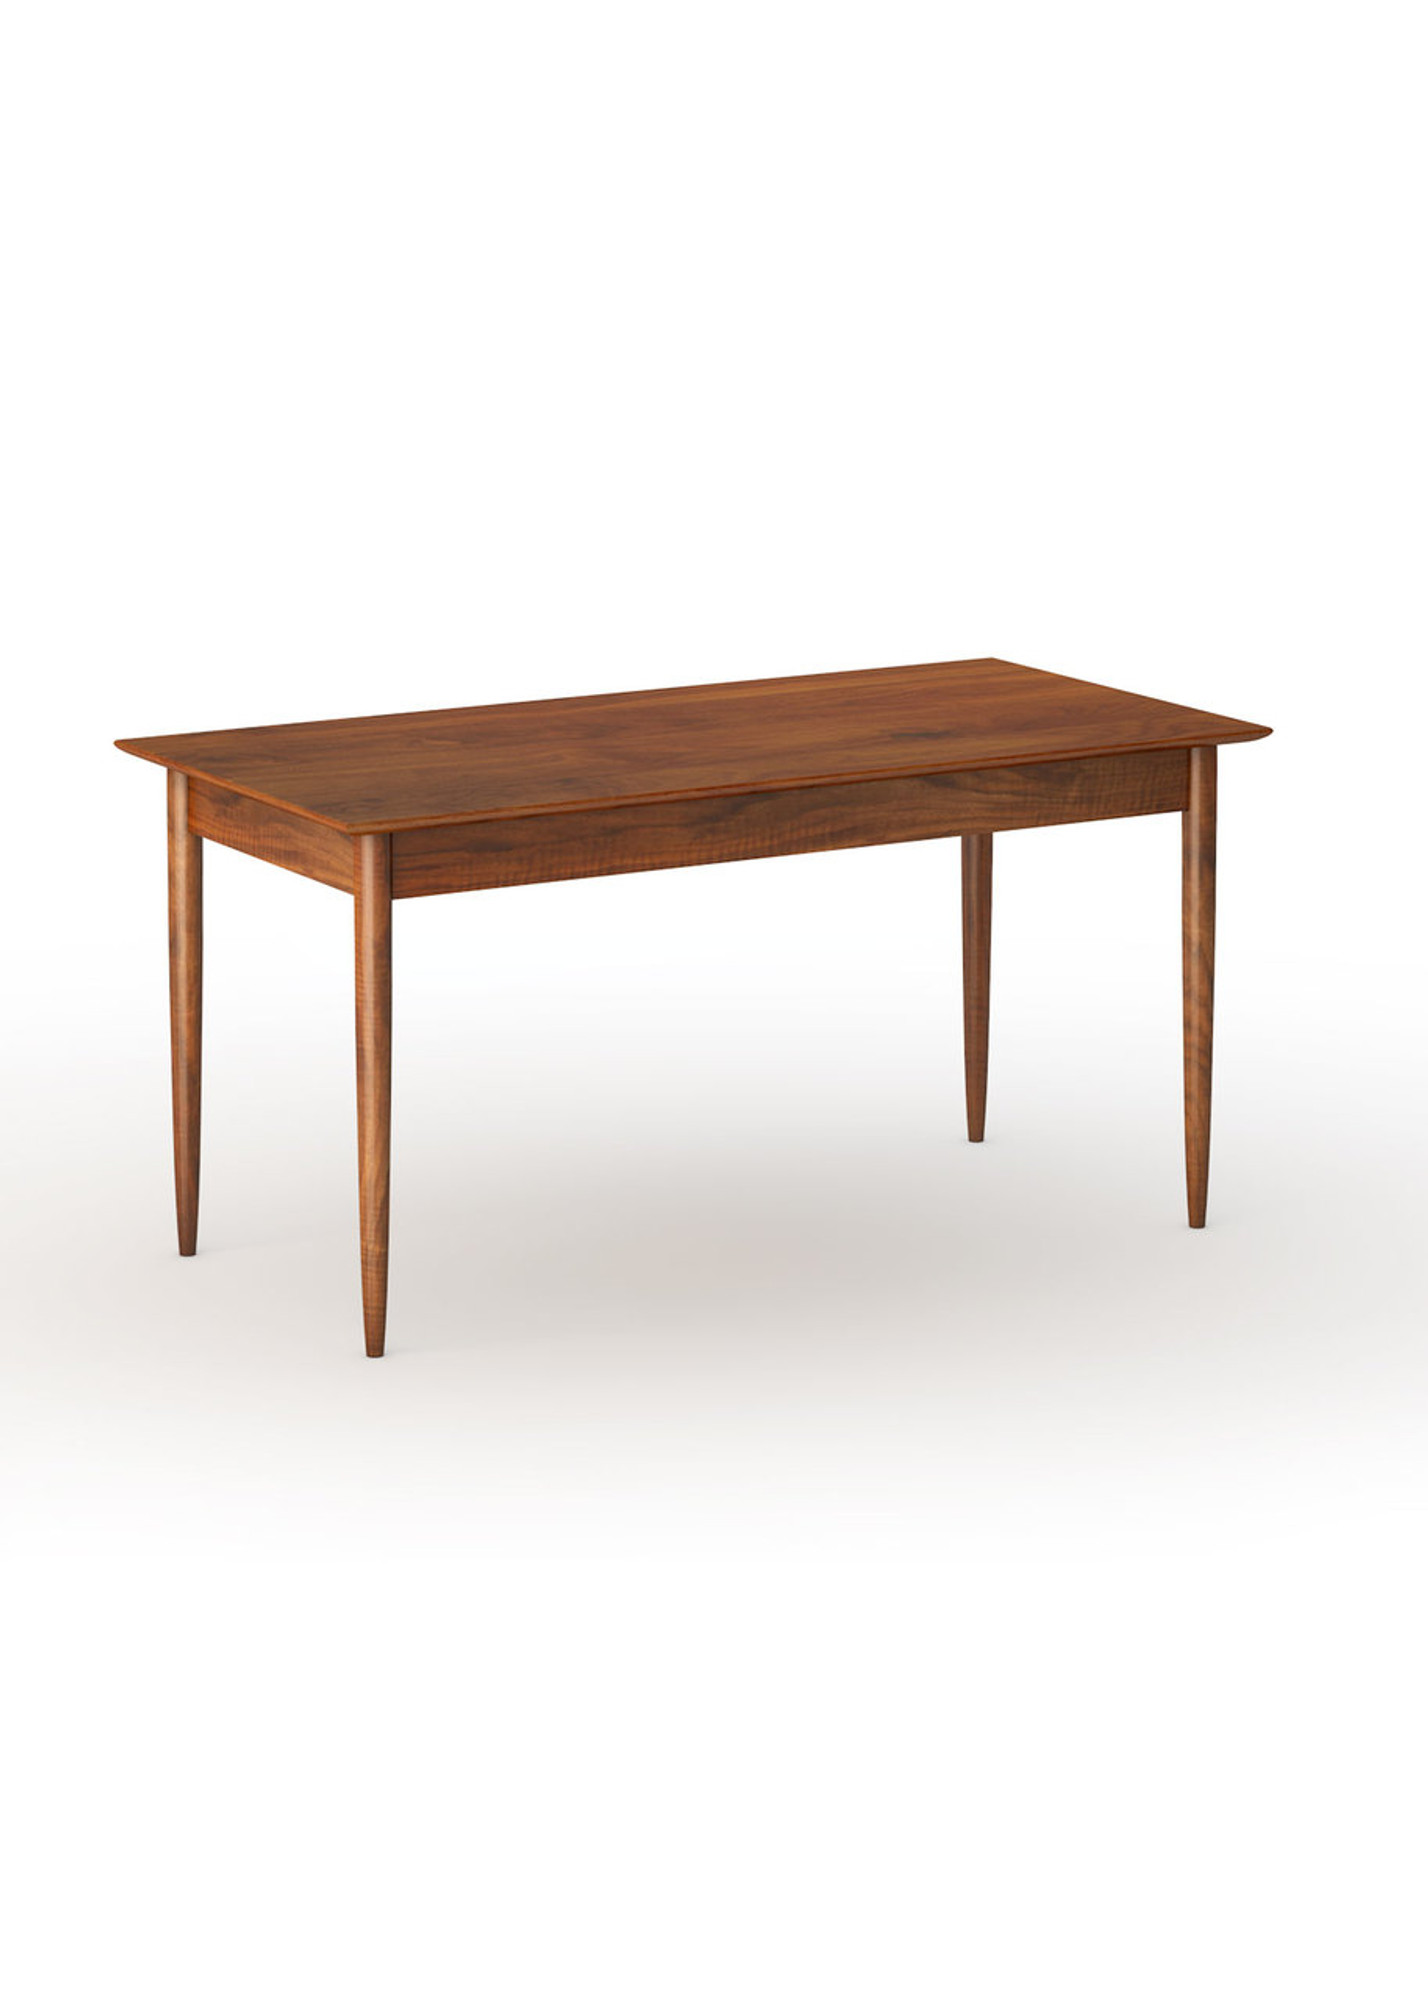 wegner danish modern dining table with aprons rh tablelegs com danish modern dining room set danish modern dining room table